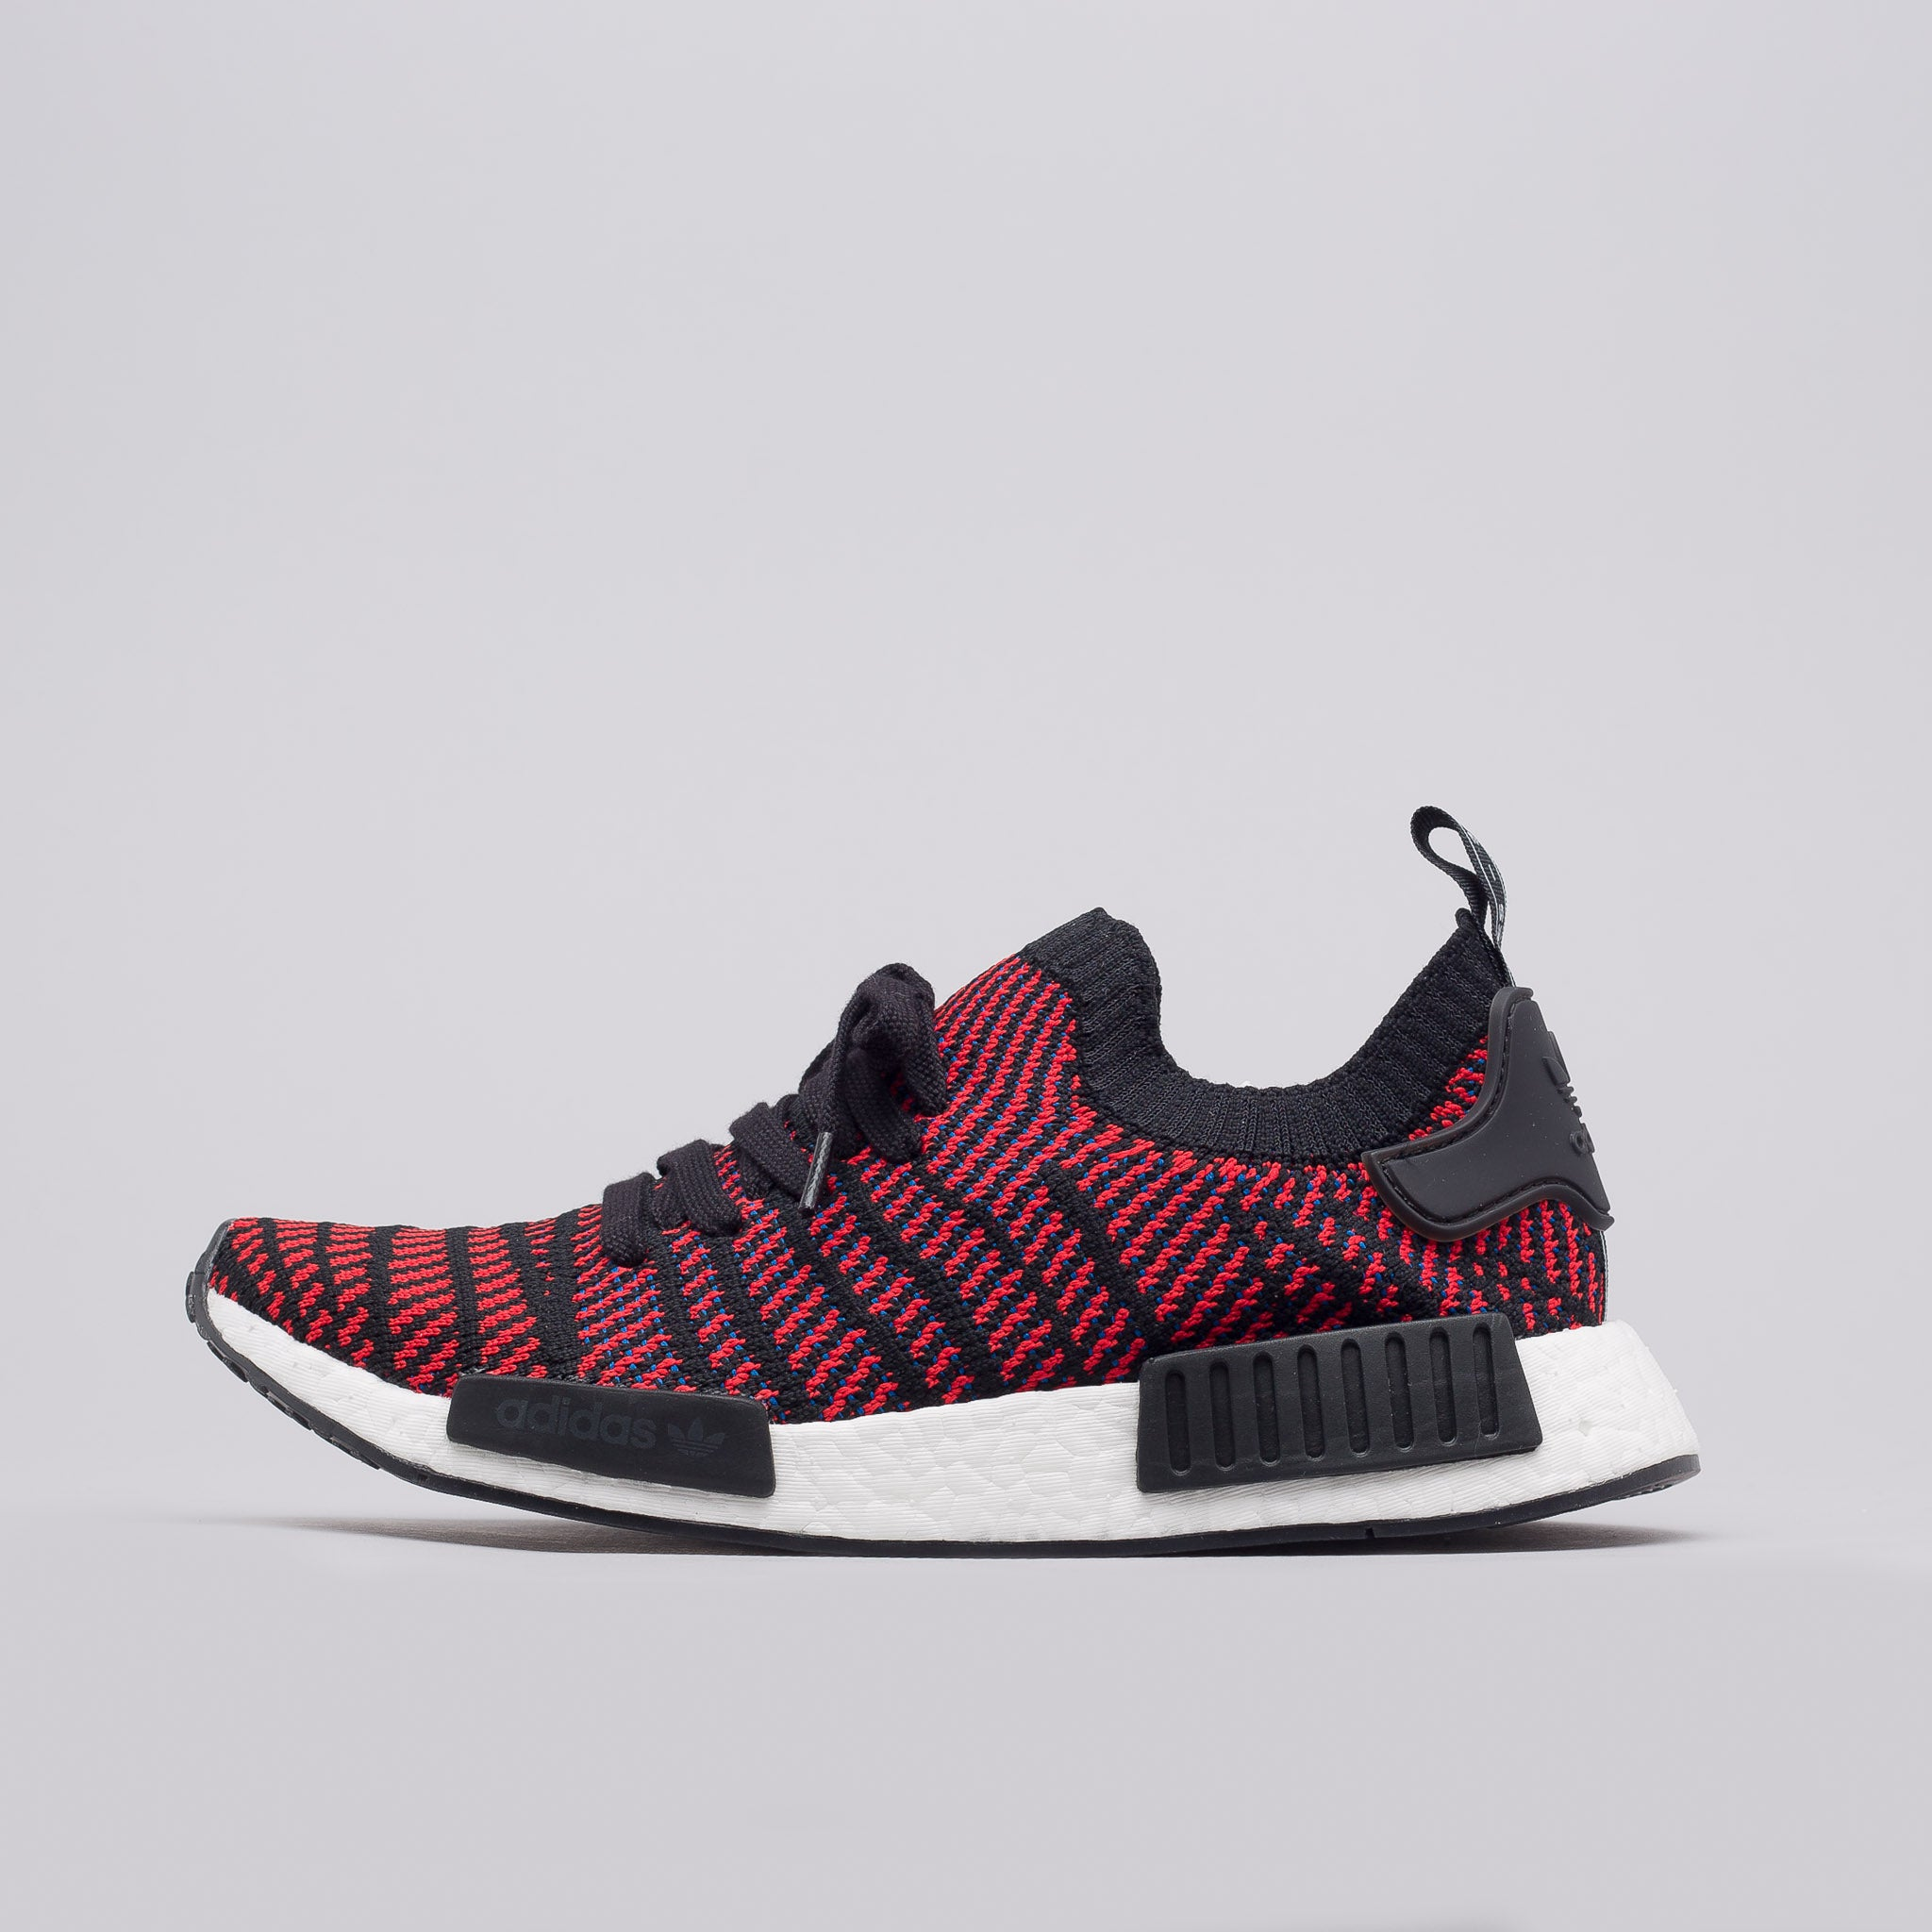 adidas NMD R1 PK Primeknit Japan Black Trainers SNEAKERS UK 9